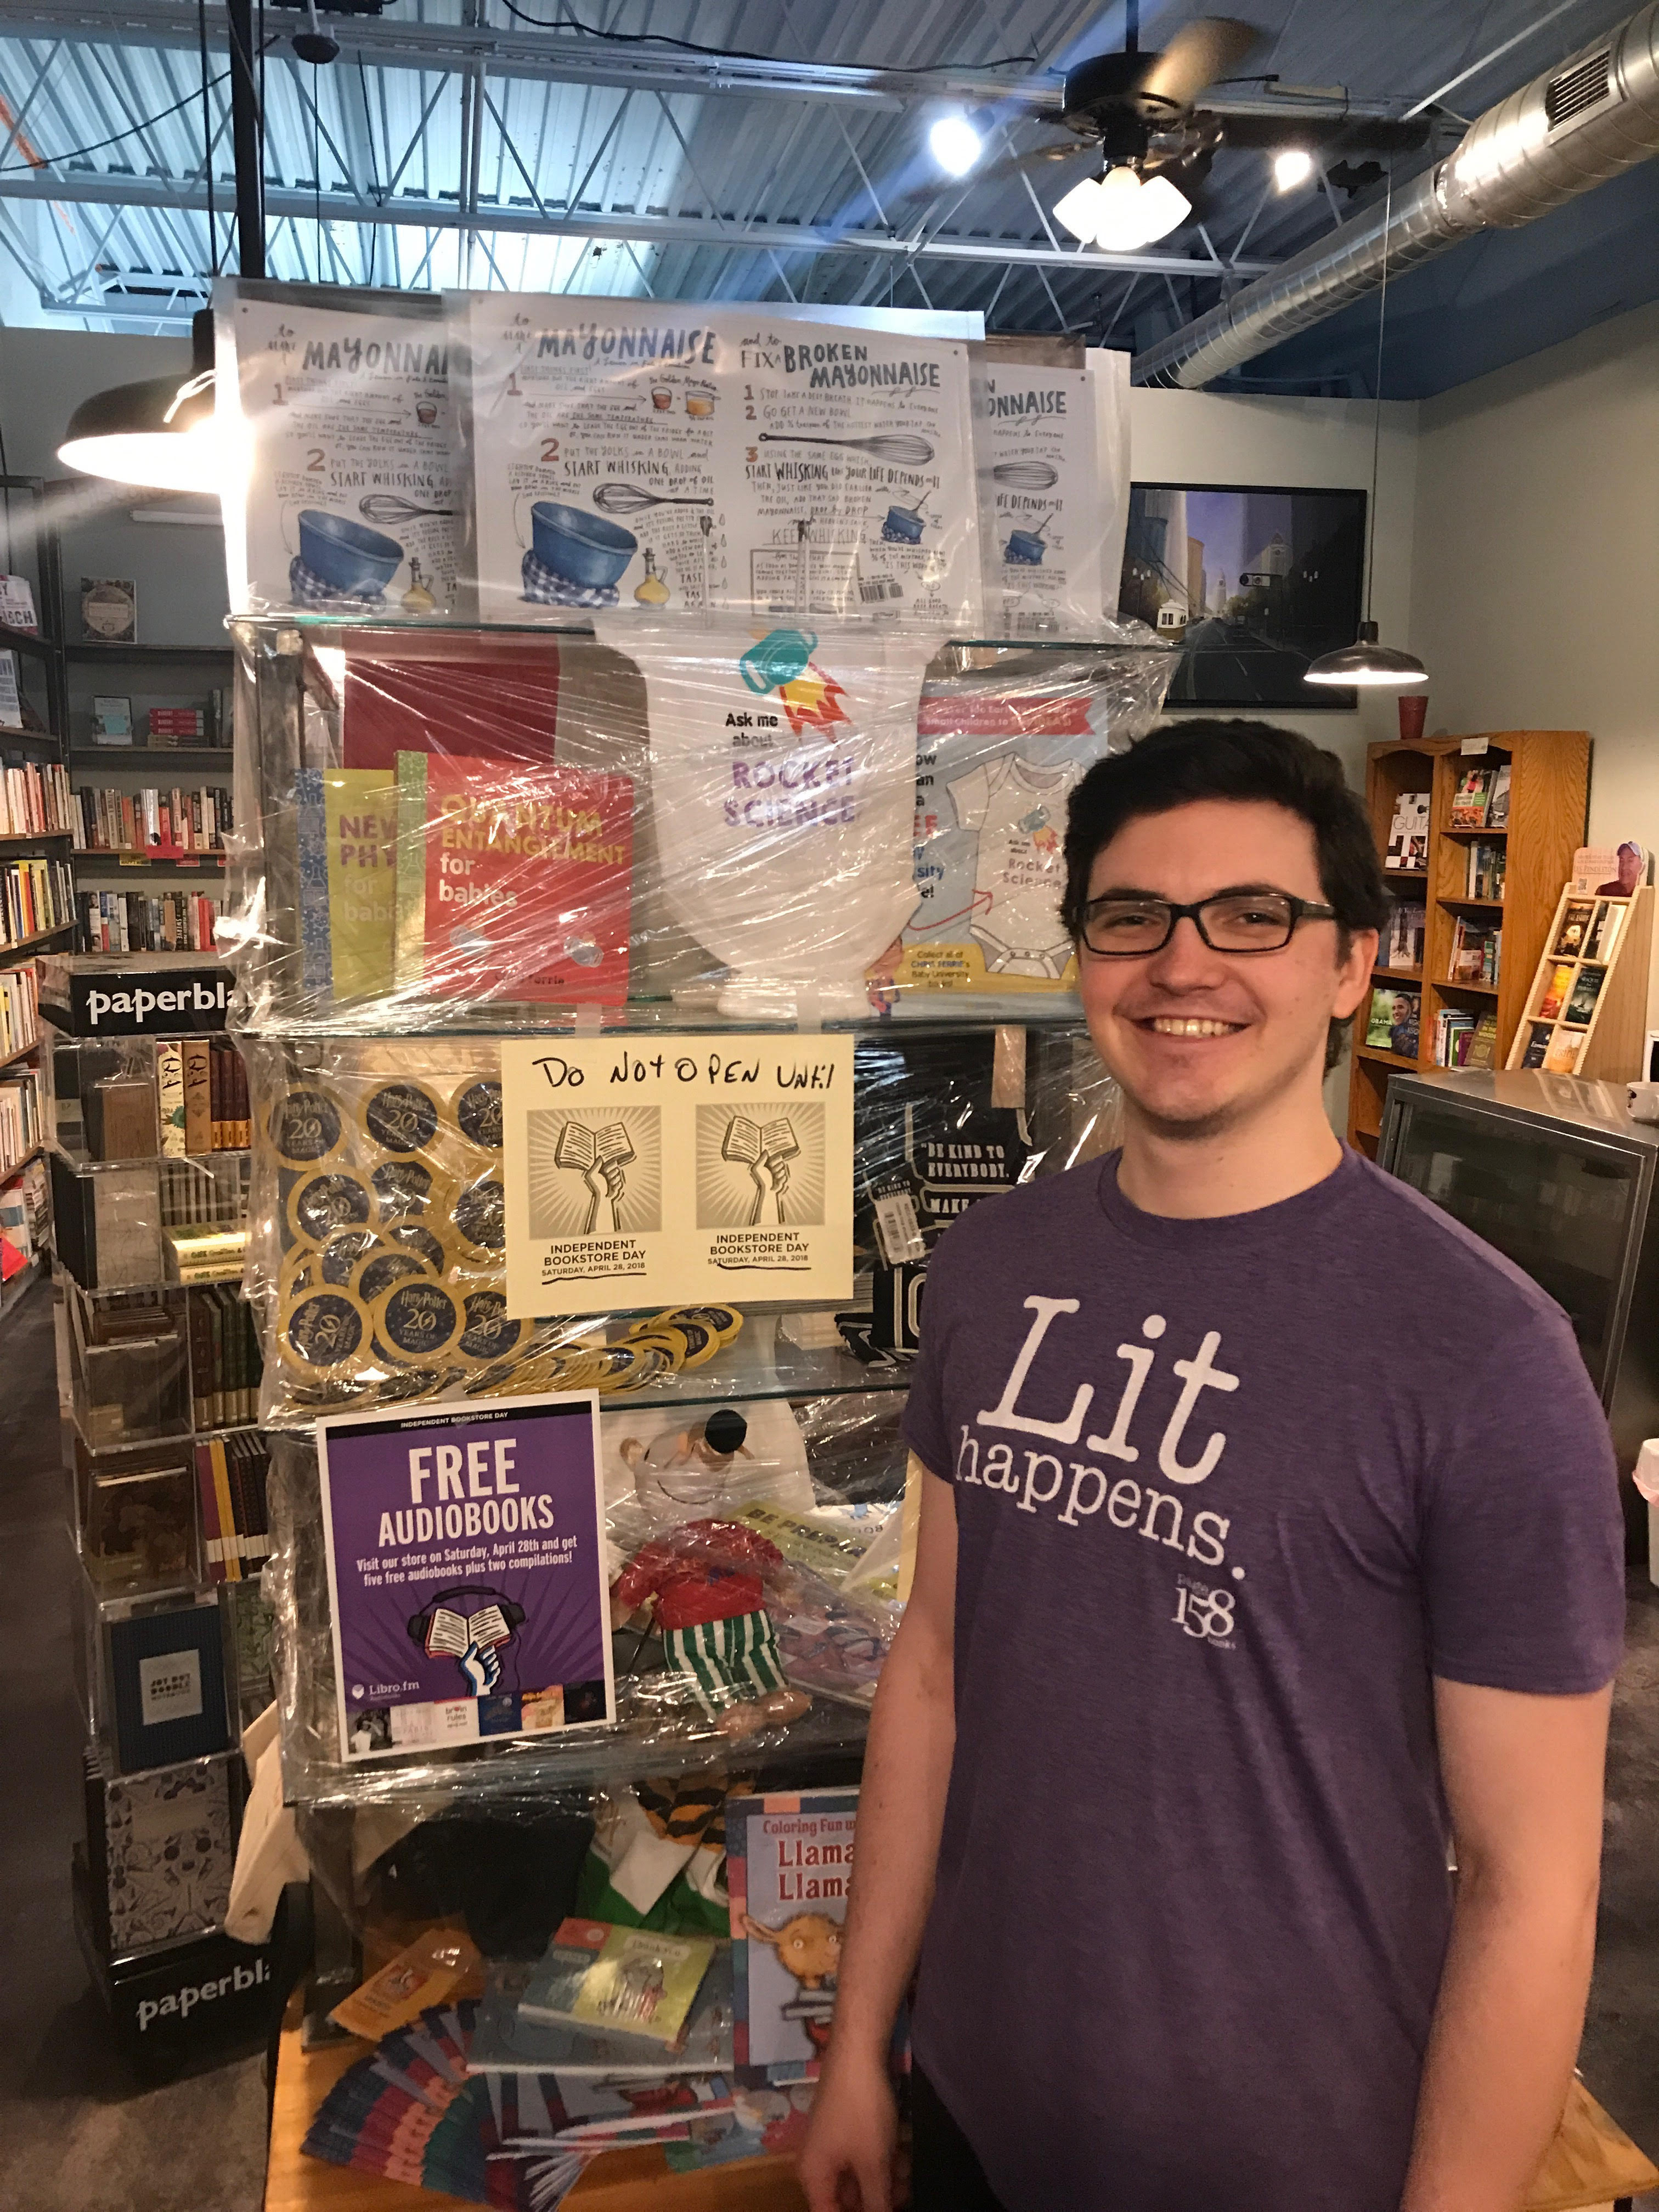 Bookseller Josh Lucey shows off a case of shrink-wrapped IBD merchandise at Page 158 Books.